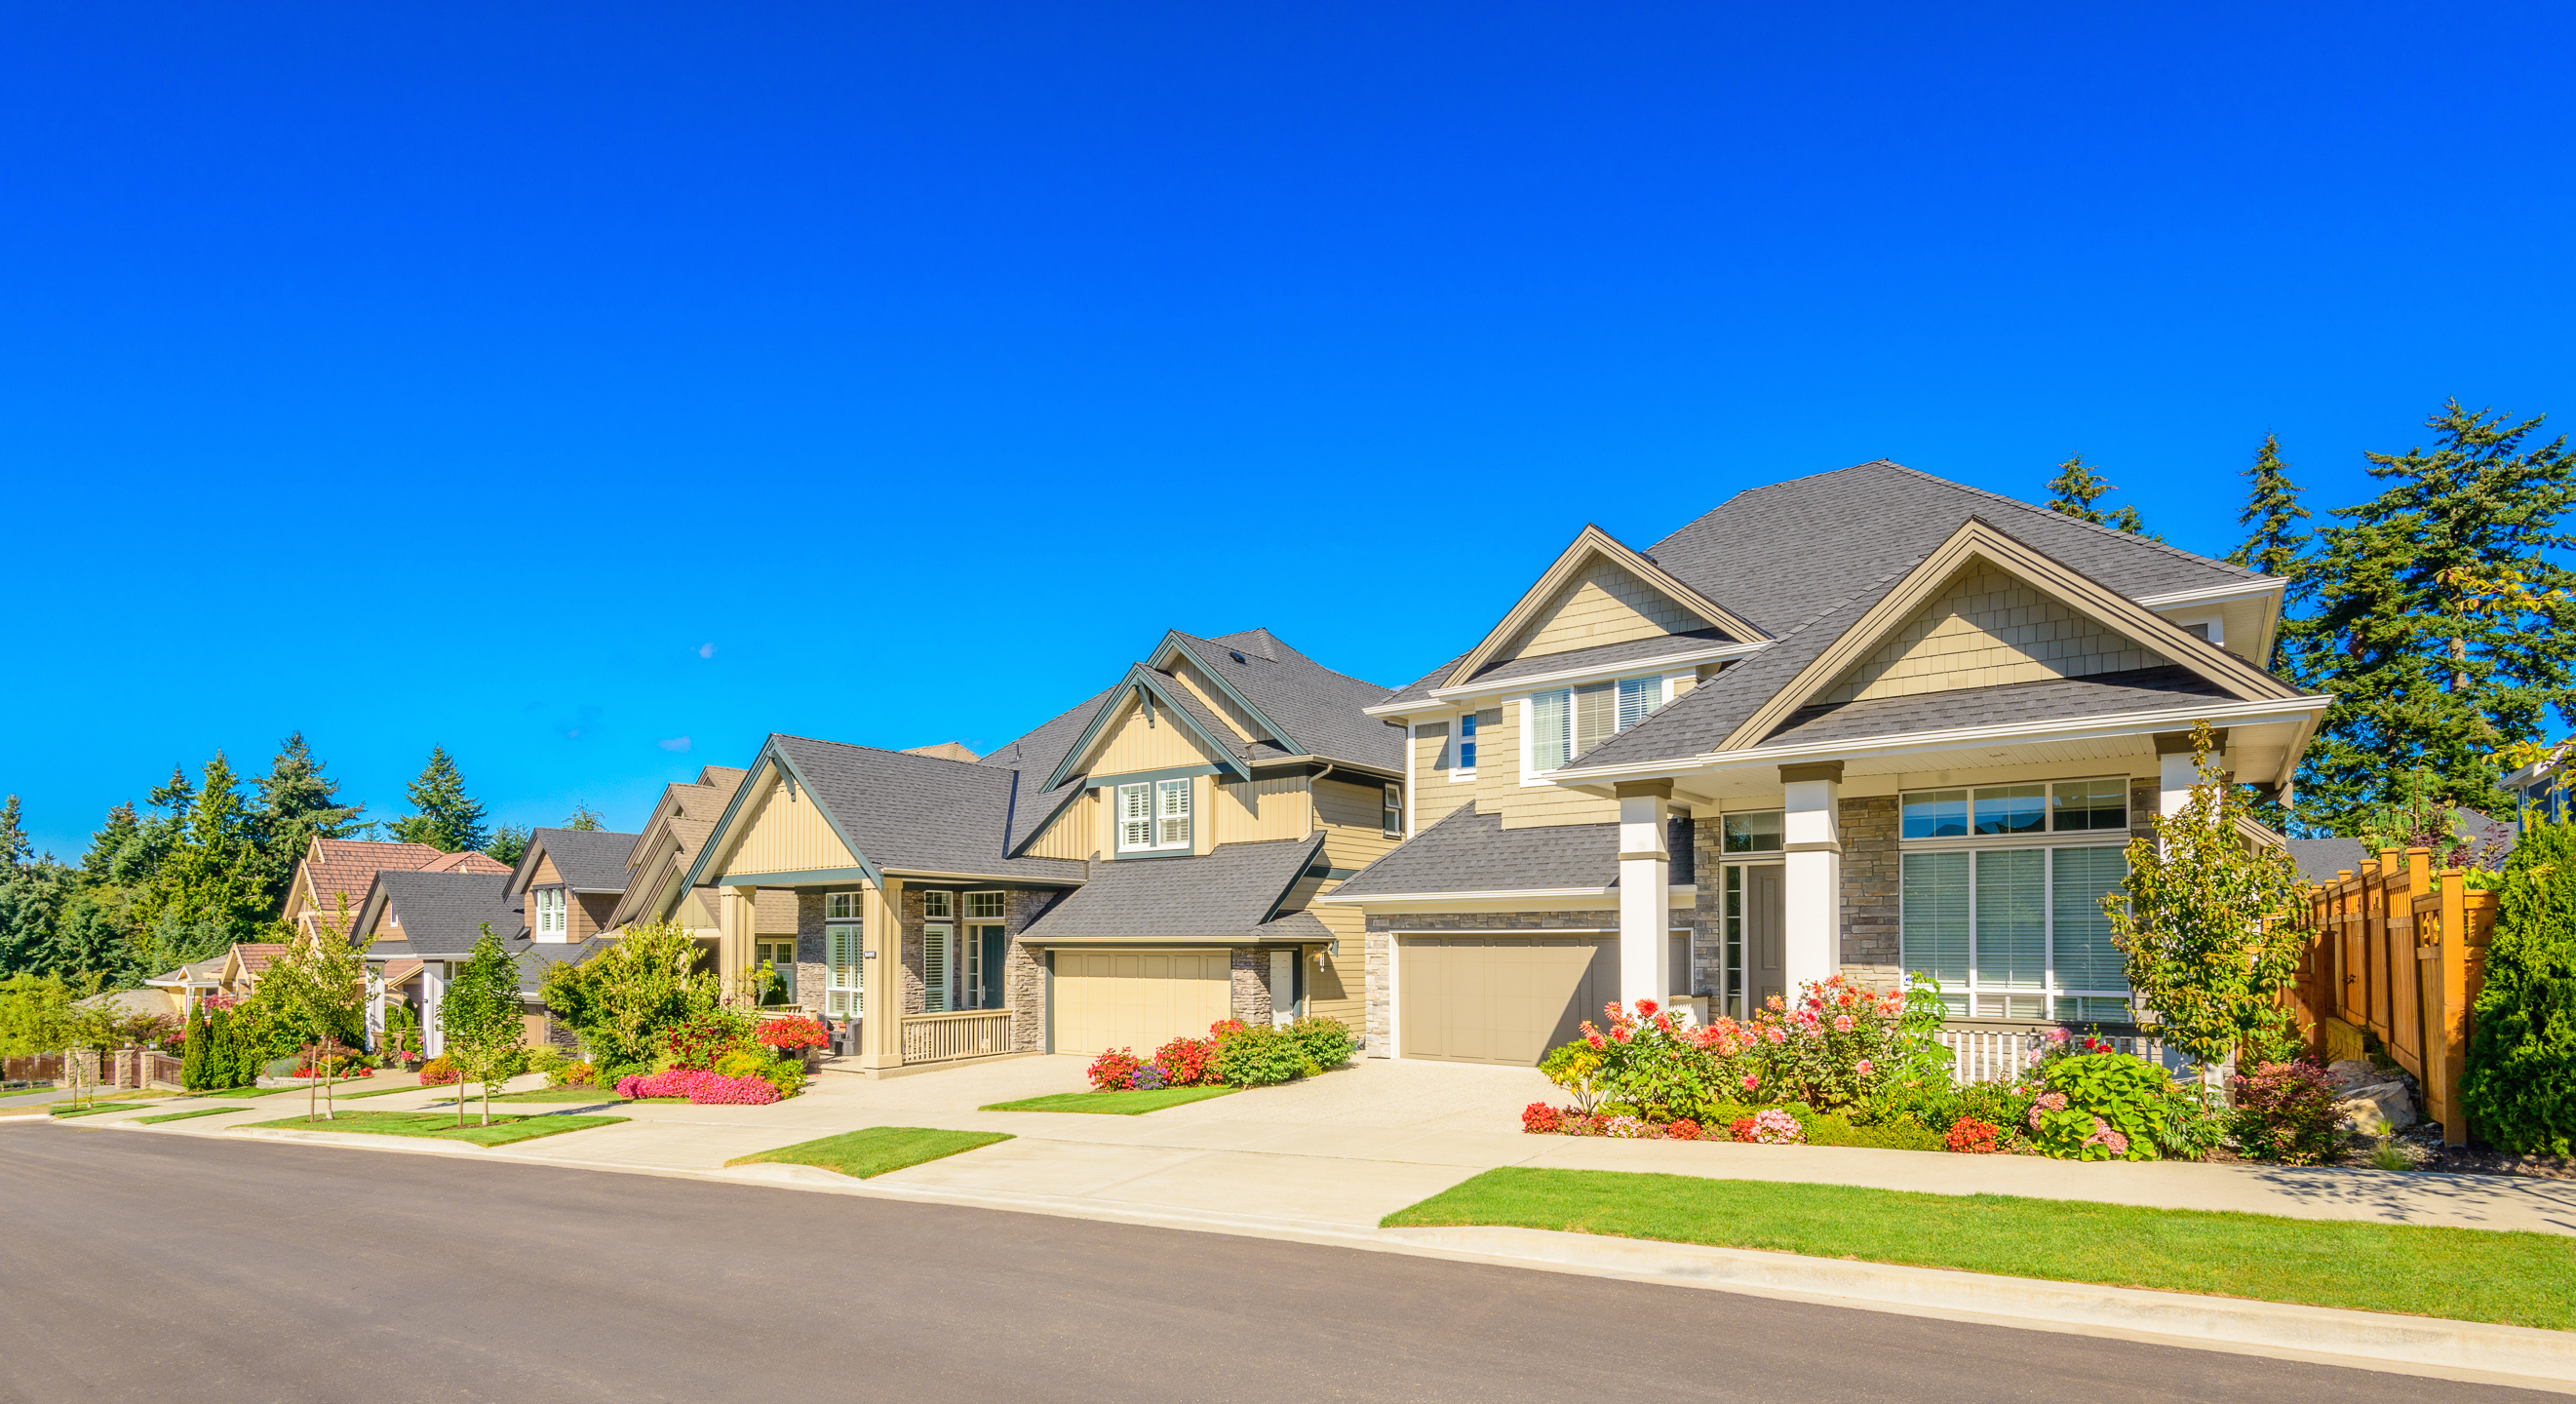 lynbrook real estate search all homes condos townhomes for sale